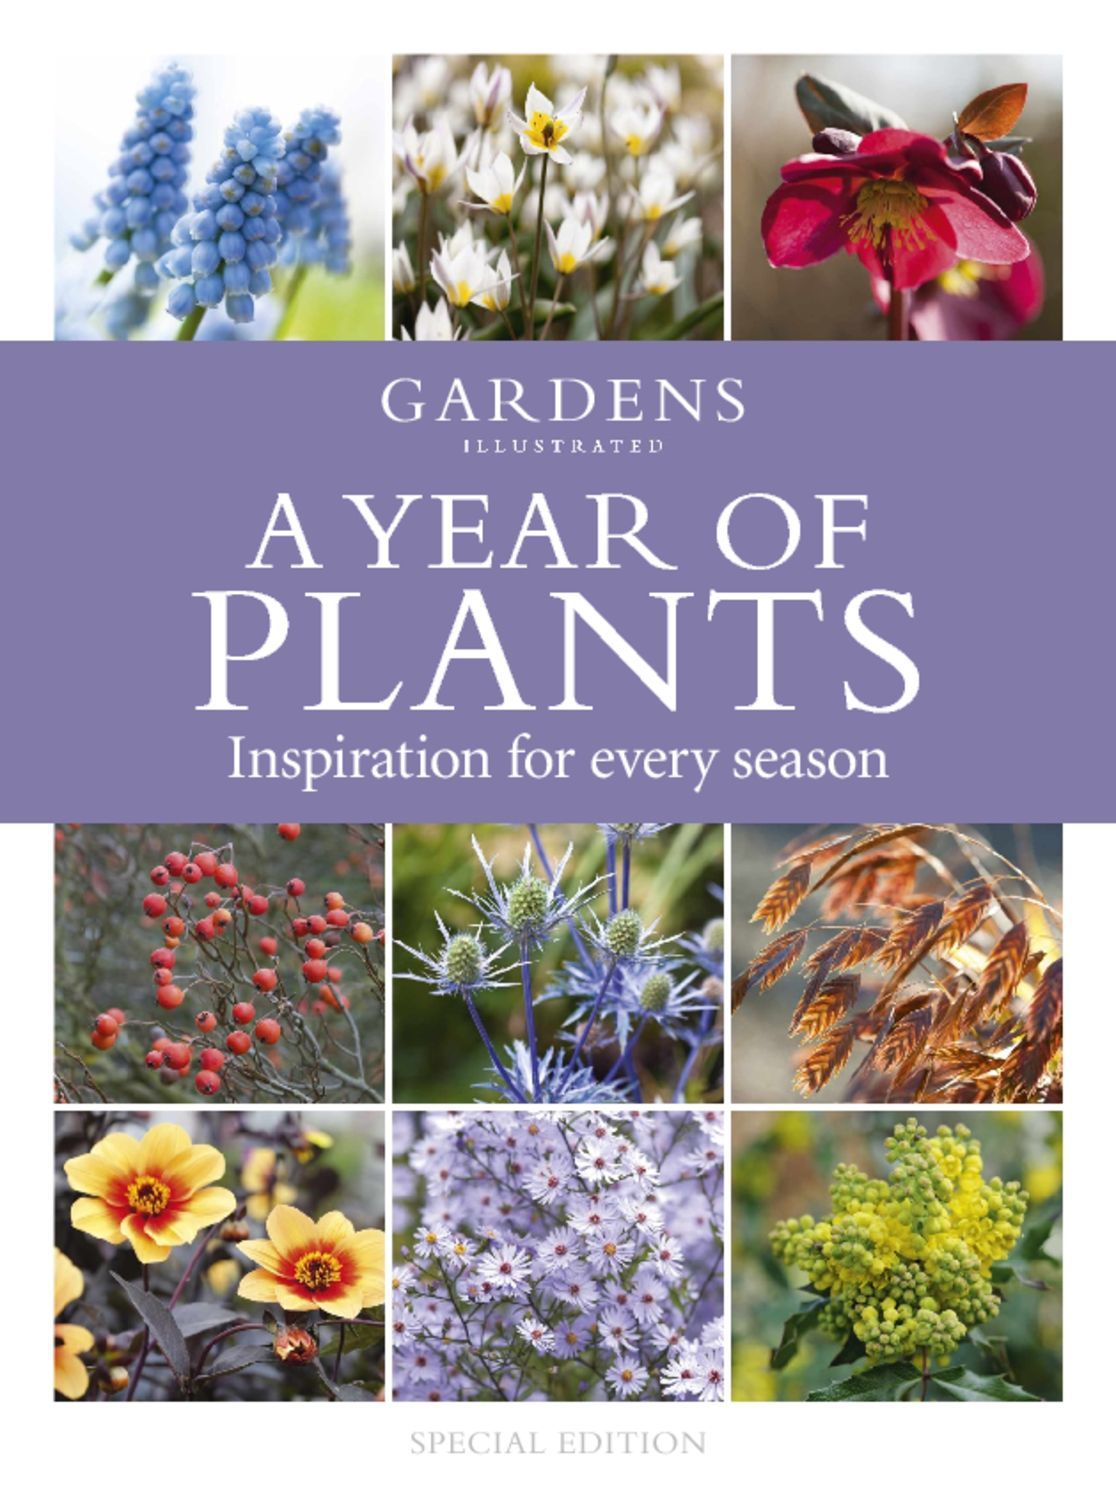 A Year of Plants from the makers of Gardens Illustrated Digital